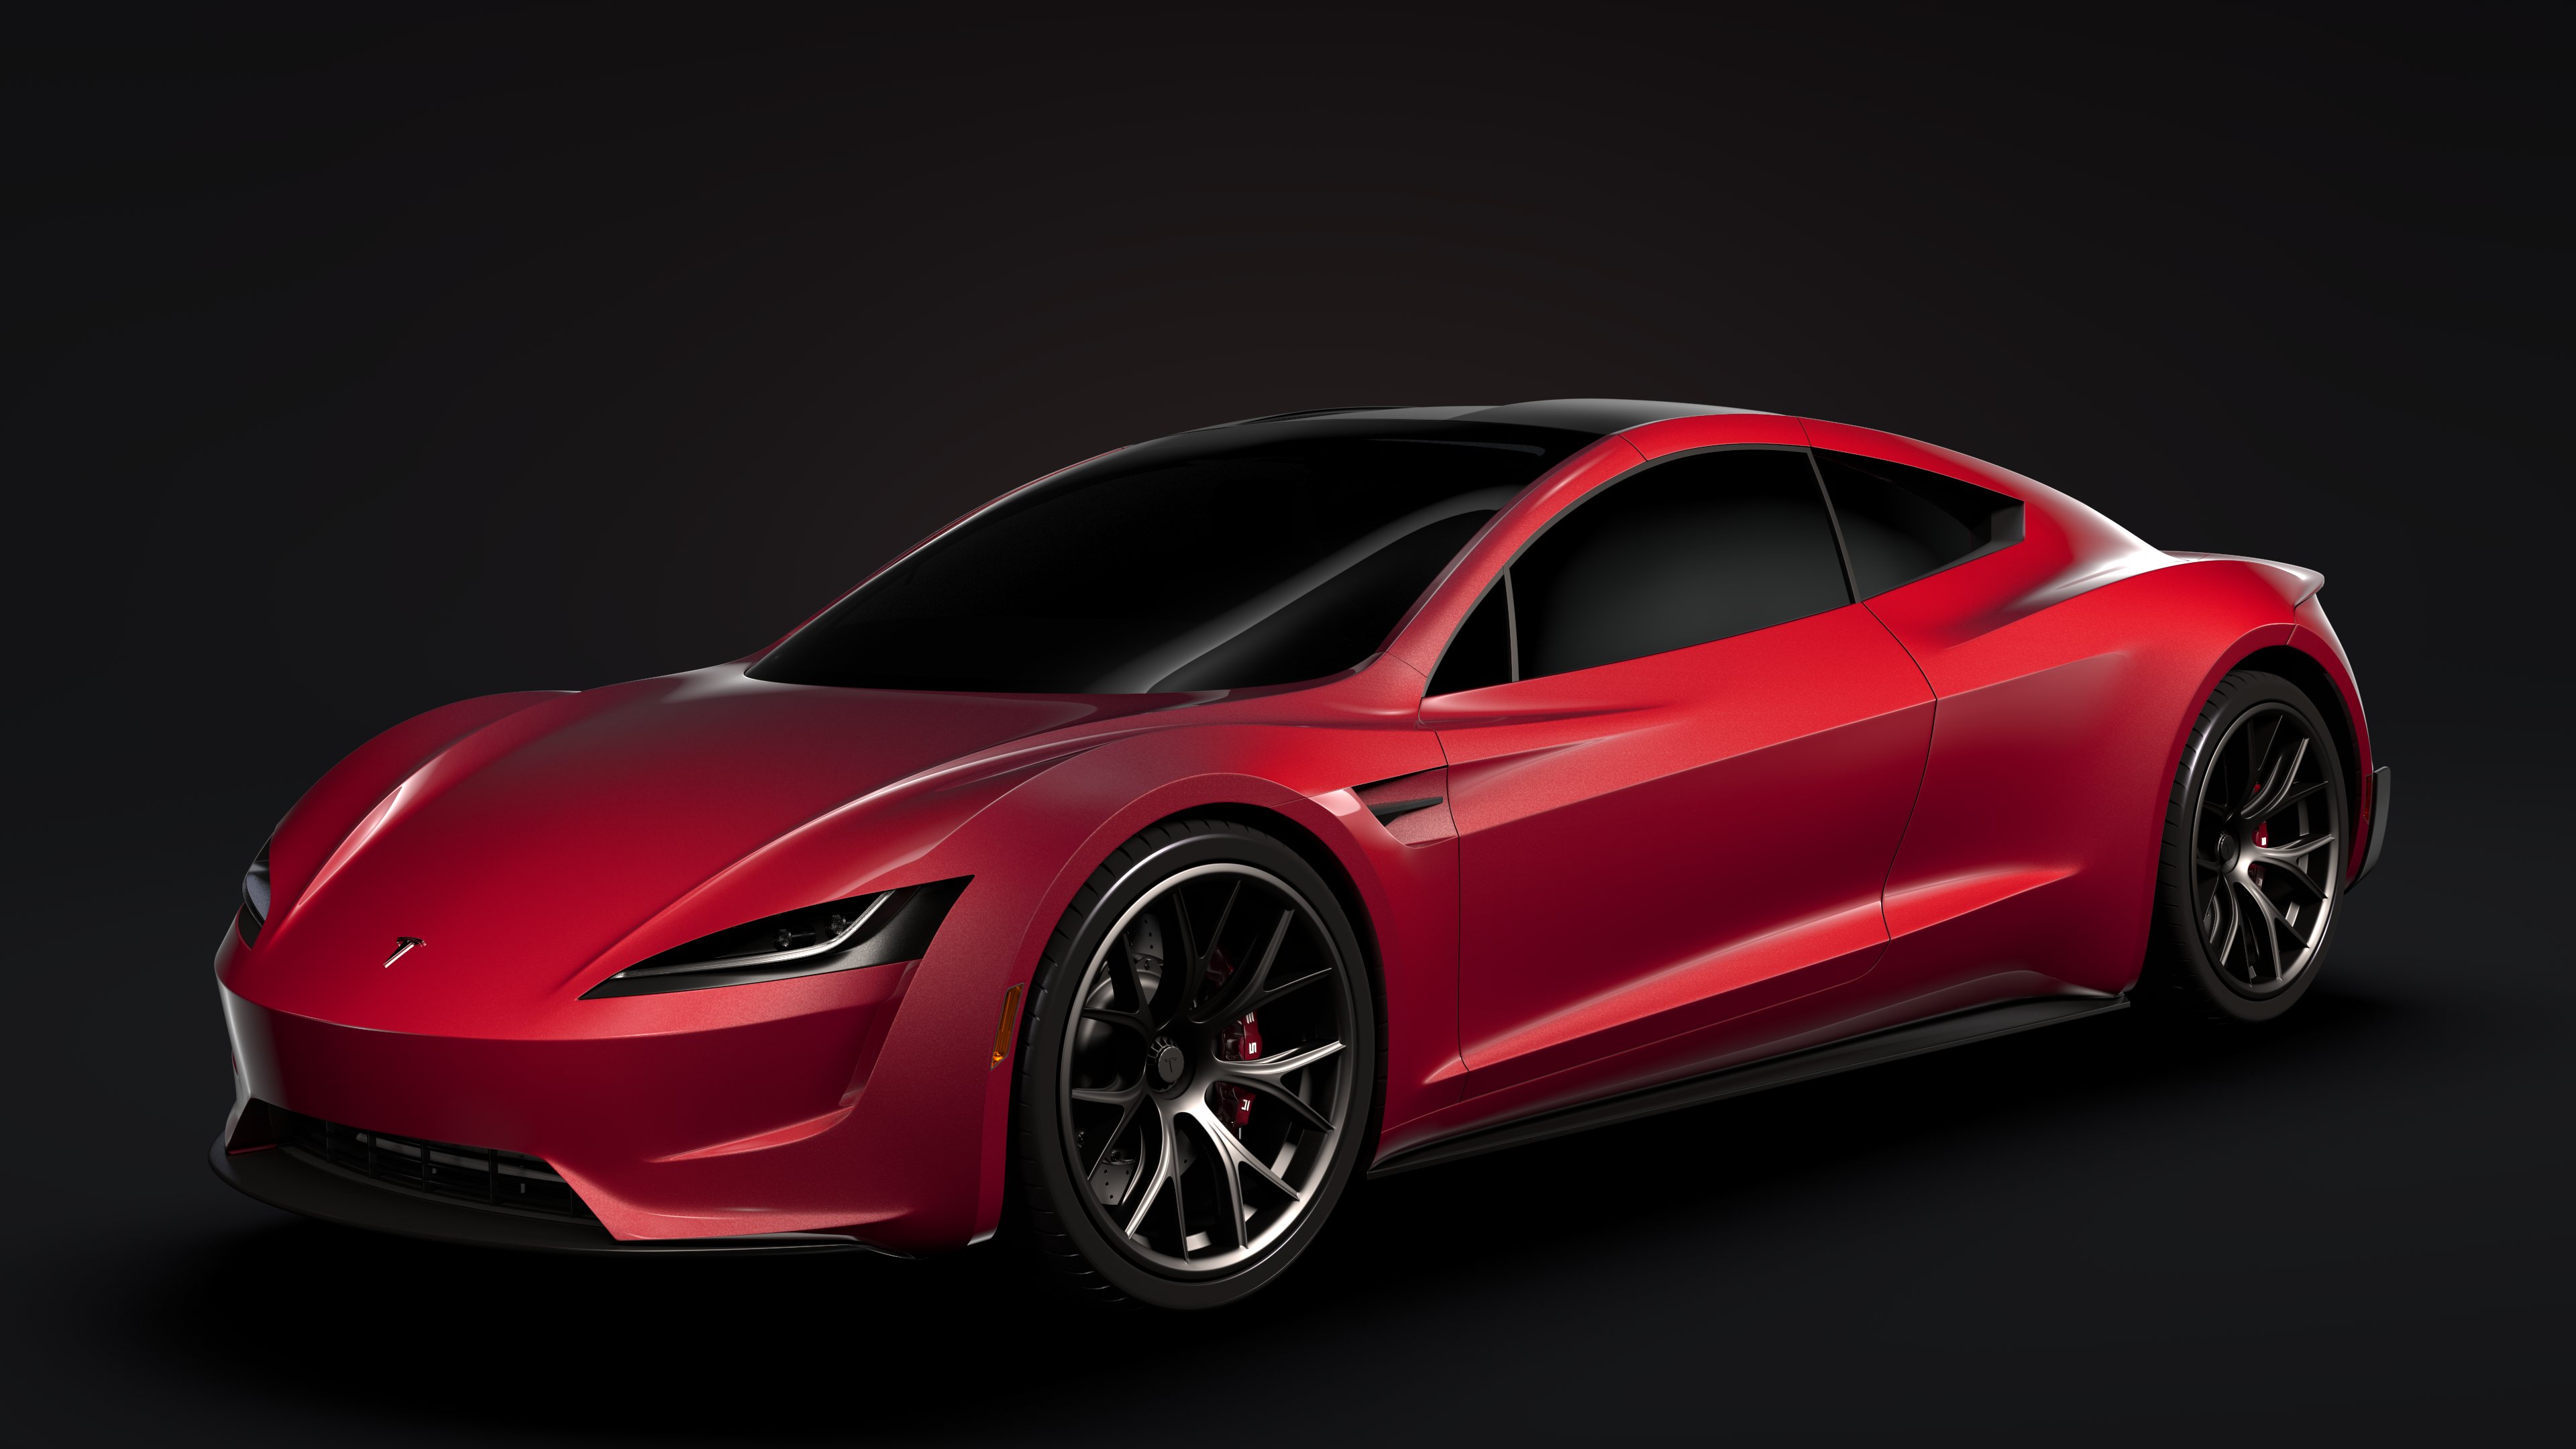 tesla roadster 2020 3d model buy tesla roadster 2020 3d model flatpyramid. Black Bedroom Furniture Sets. Home Design Ideas